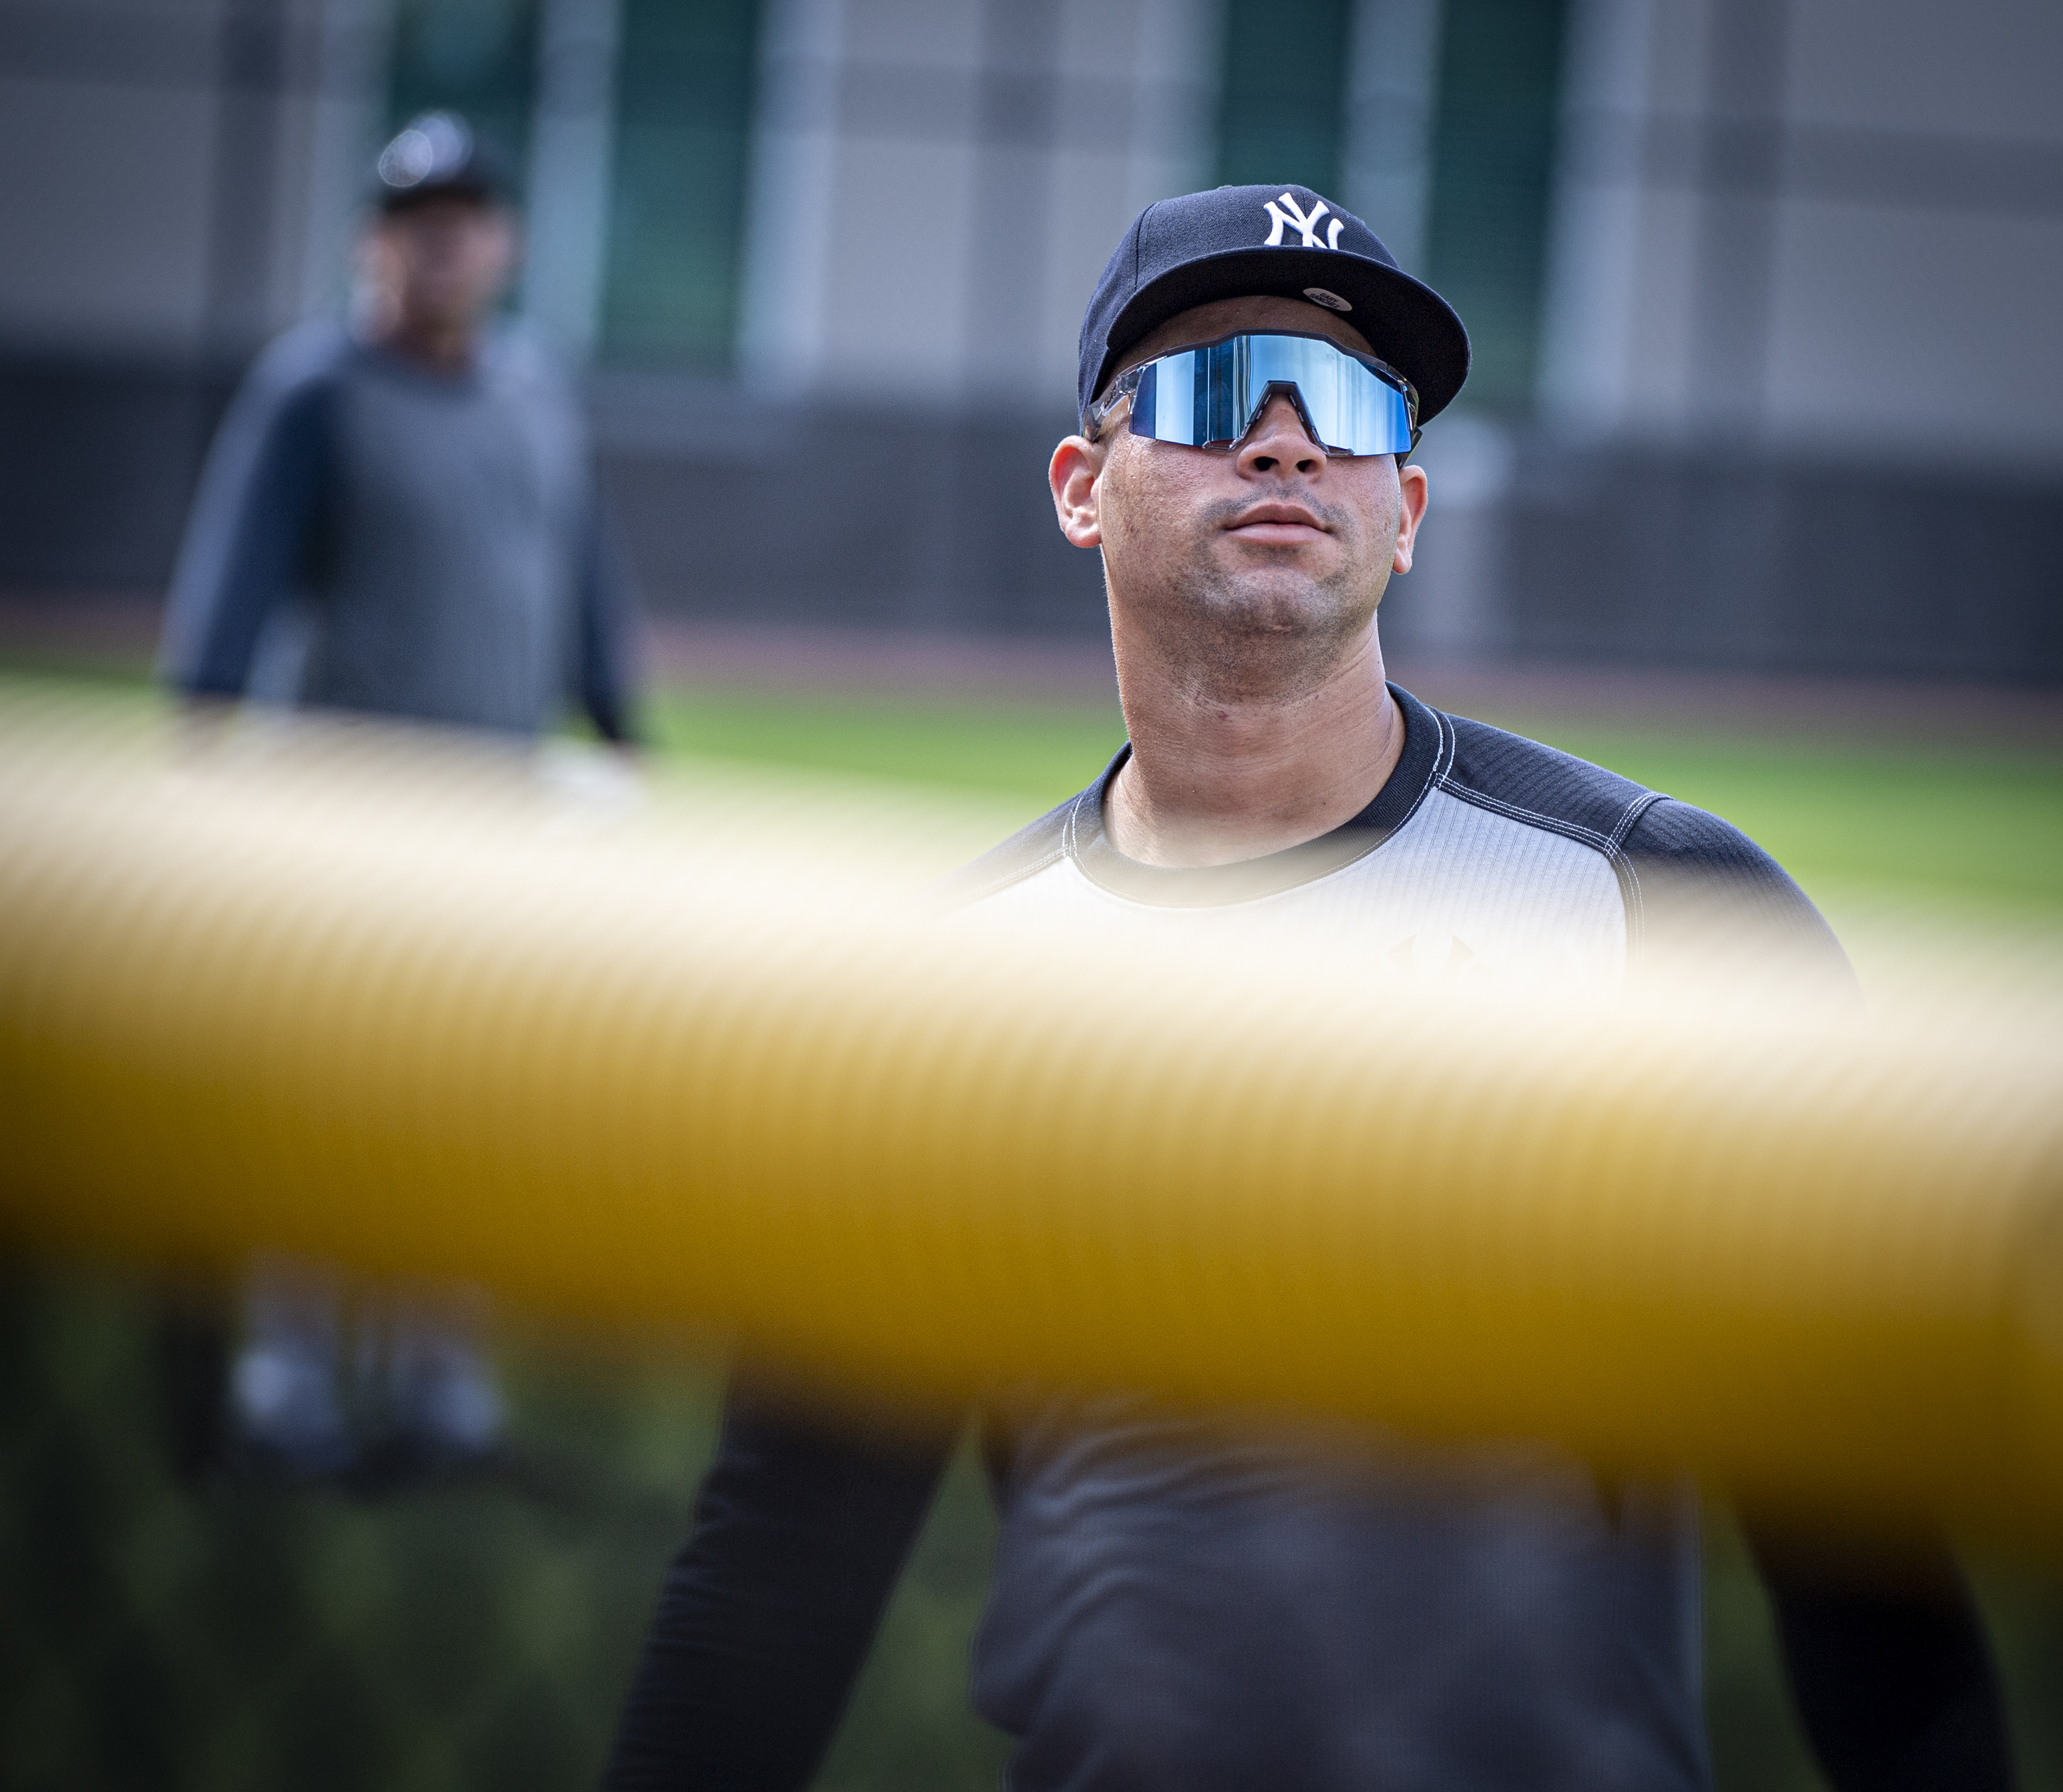 New York Yankees catcher Gary Sanchez at spring training in 2020